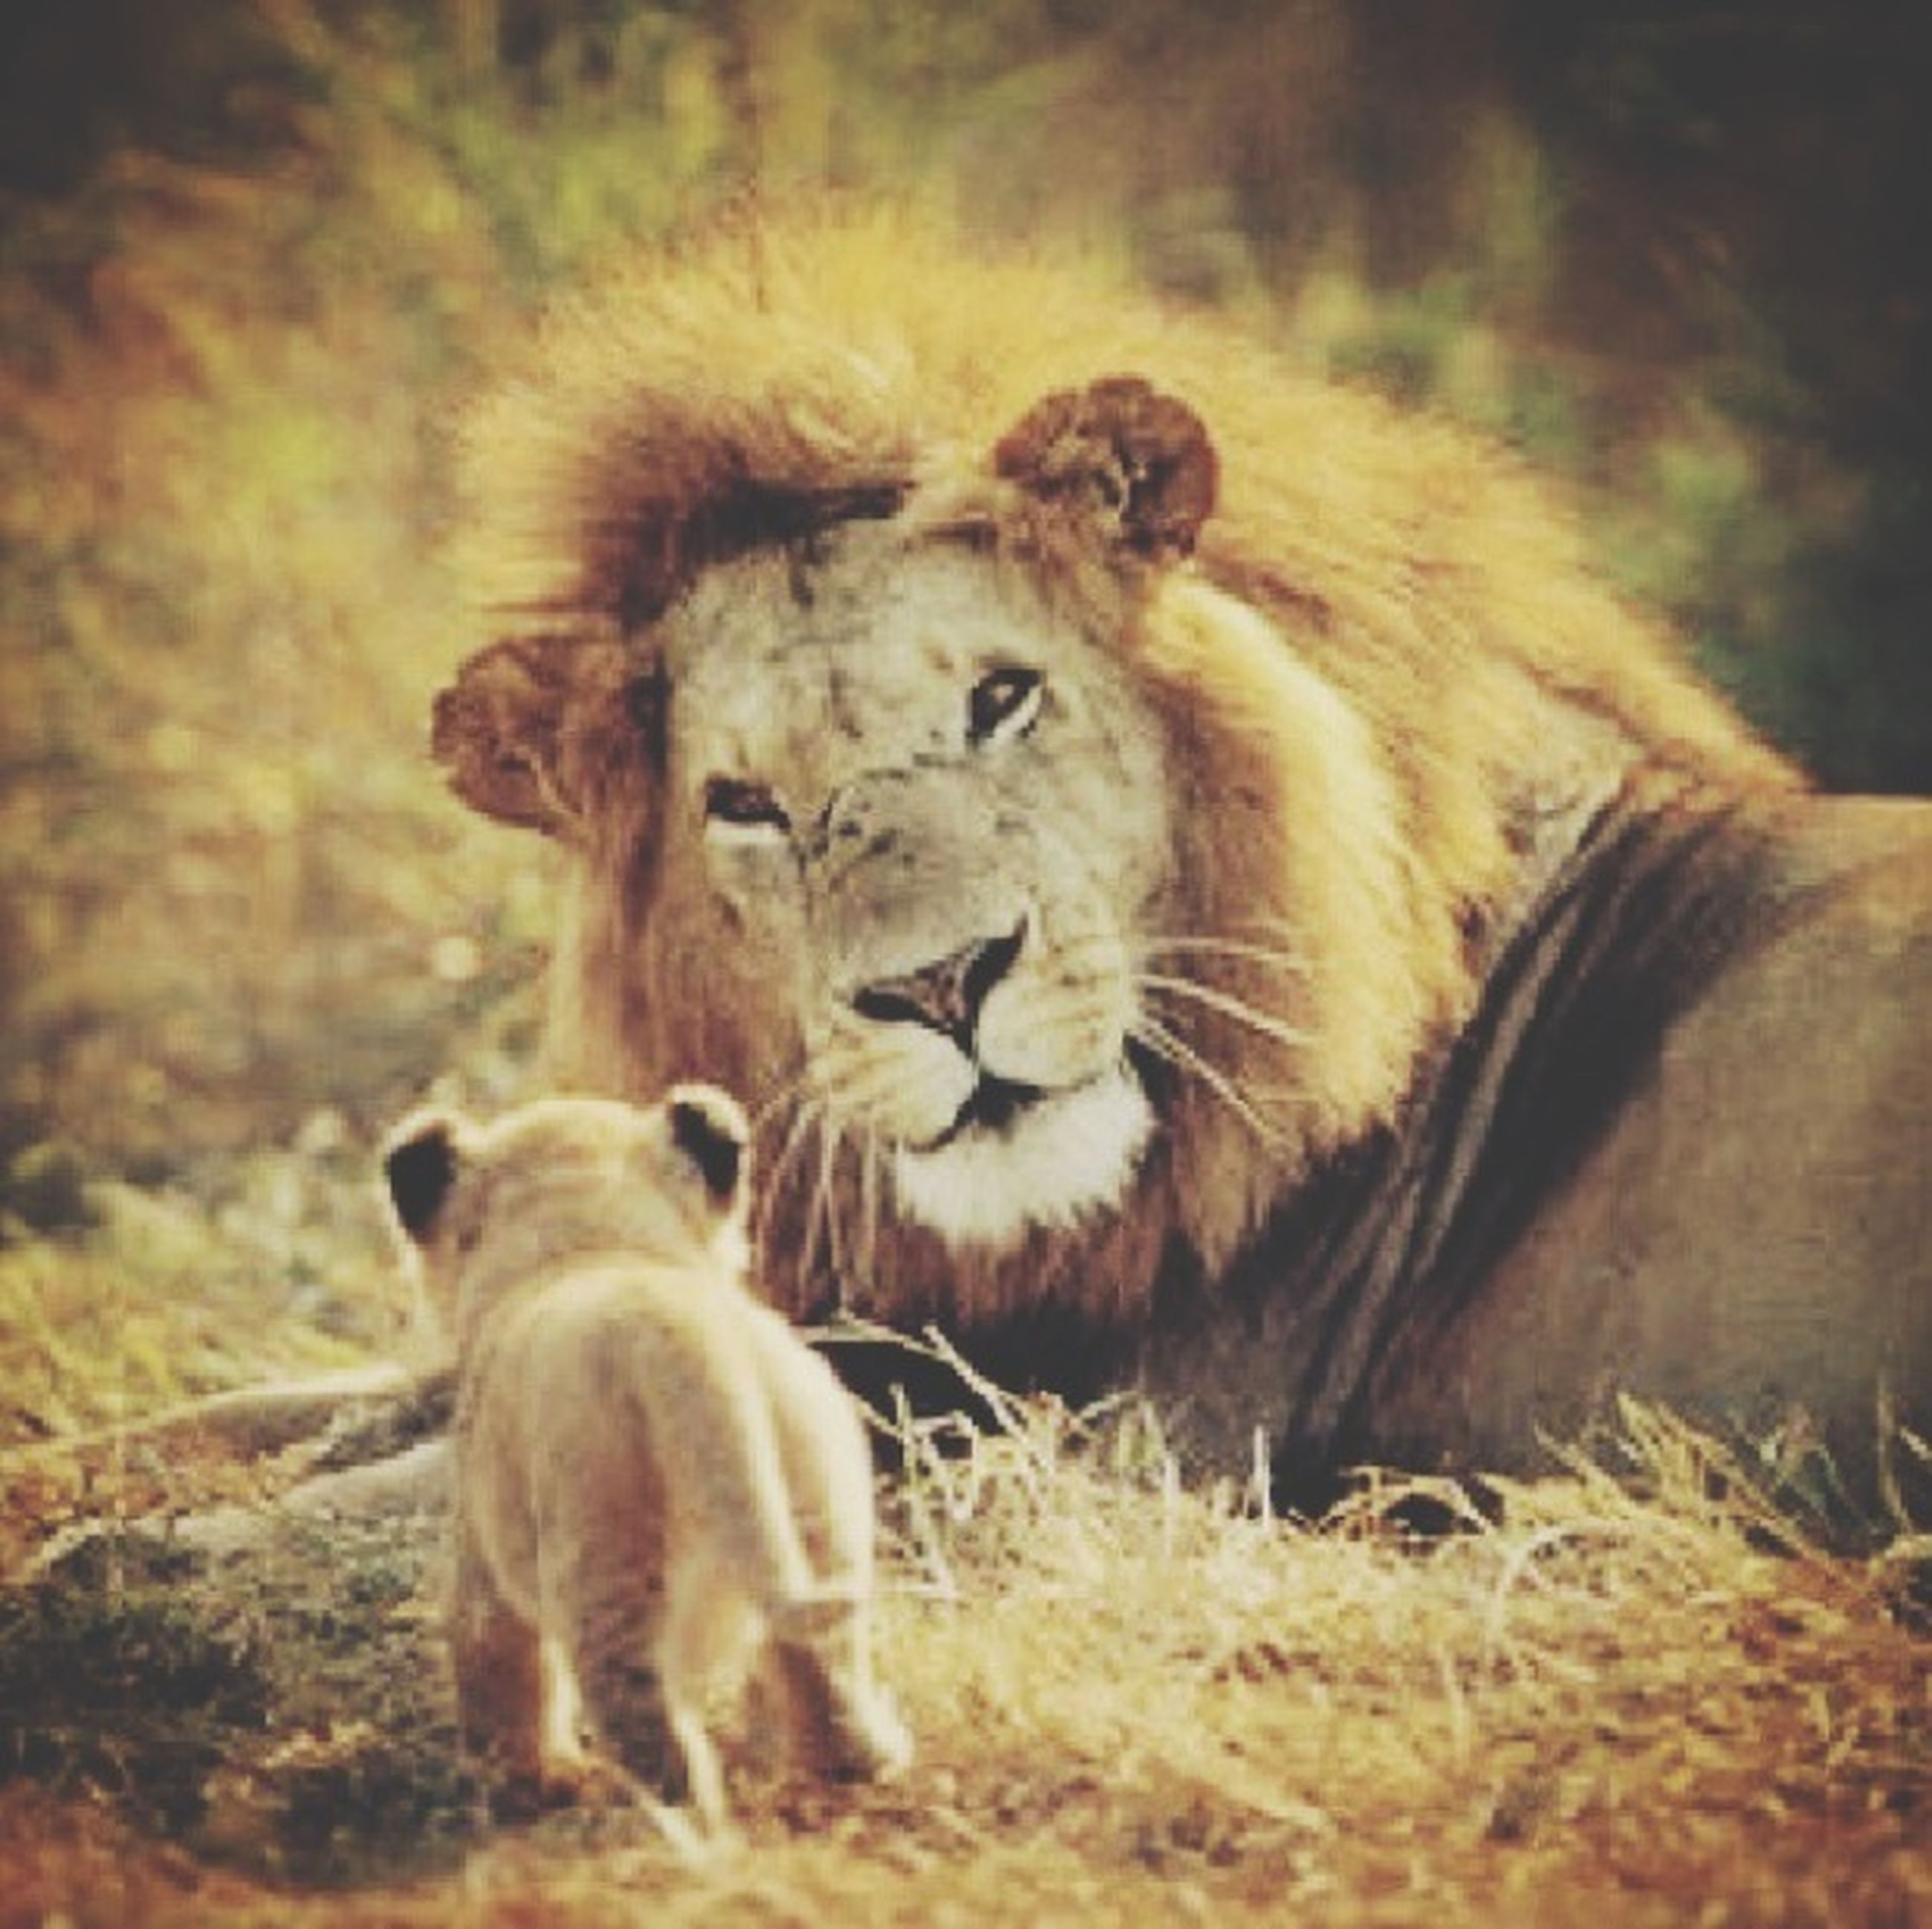 animal themes, mammal, animals in the wild, wildlife, one animal, field, safari animals, lion - feline, focus on foreground, young animal, grass, animal family, two animals, nature, day, relaxation, outdoors, horned, forest